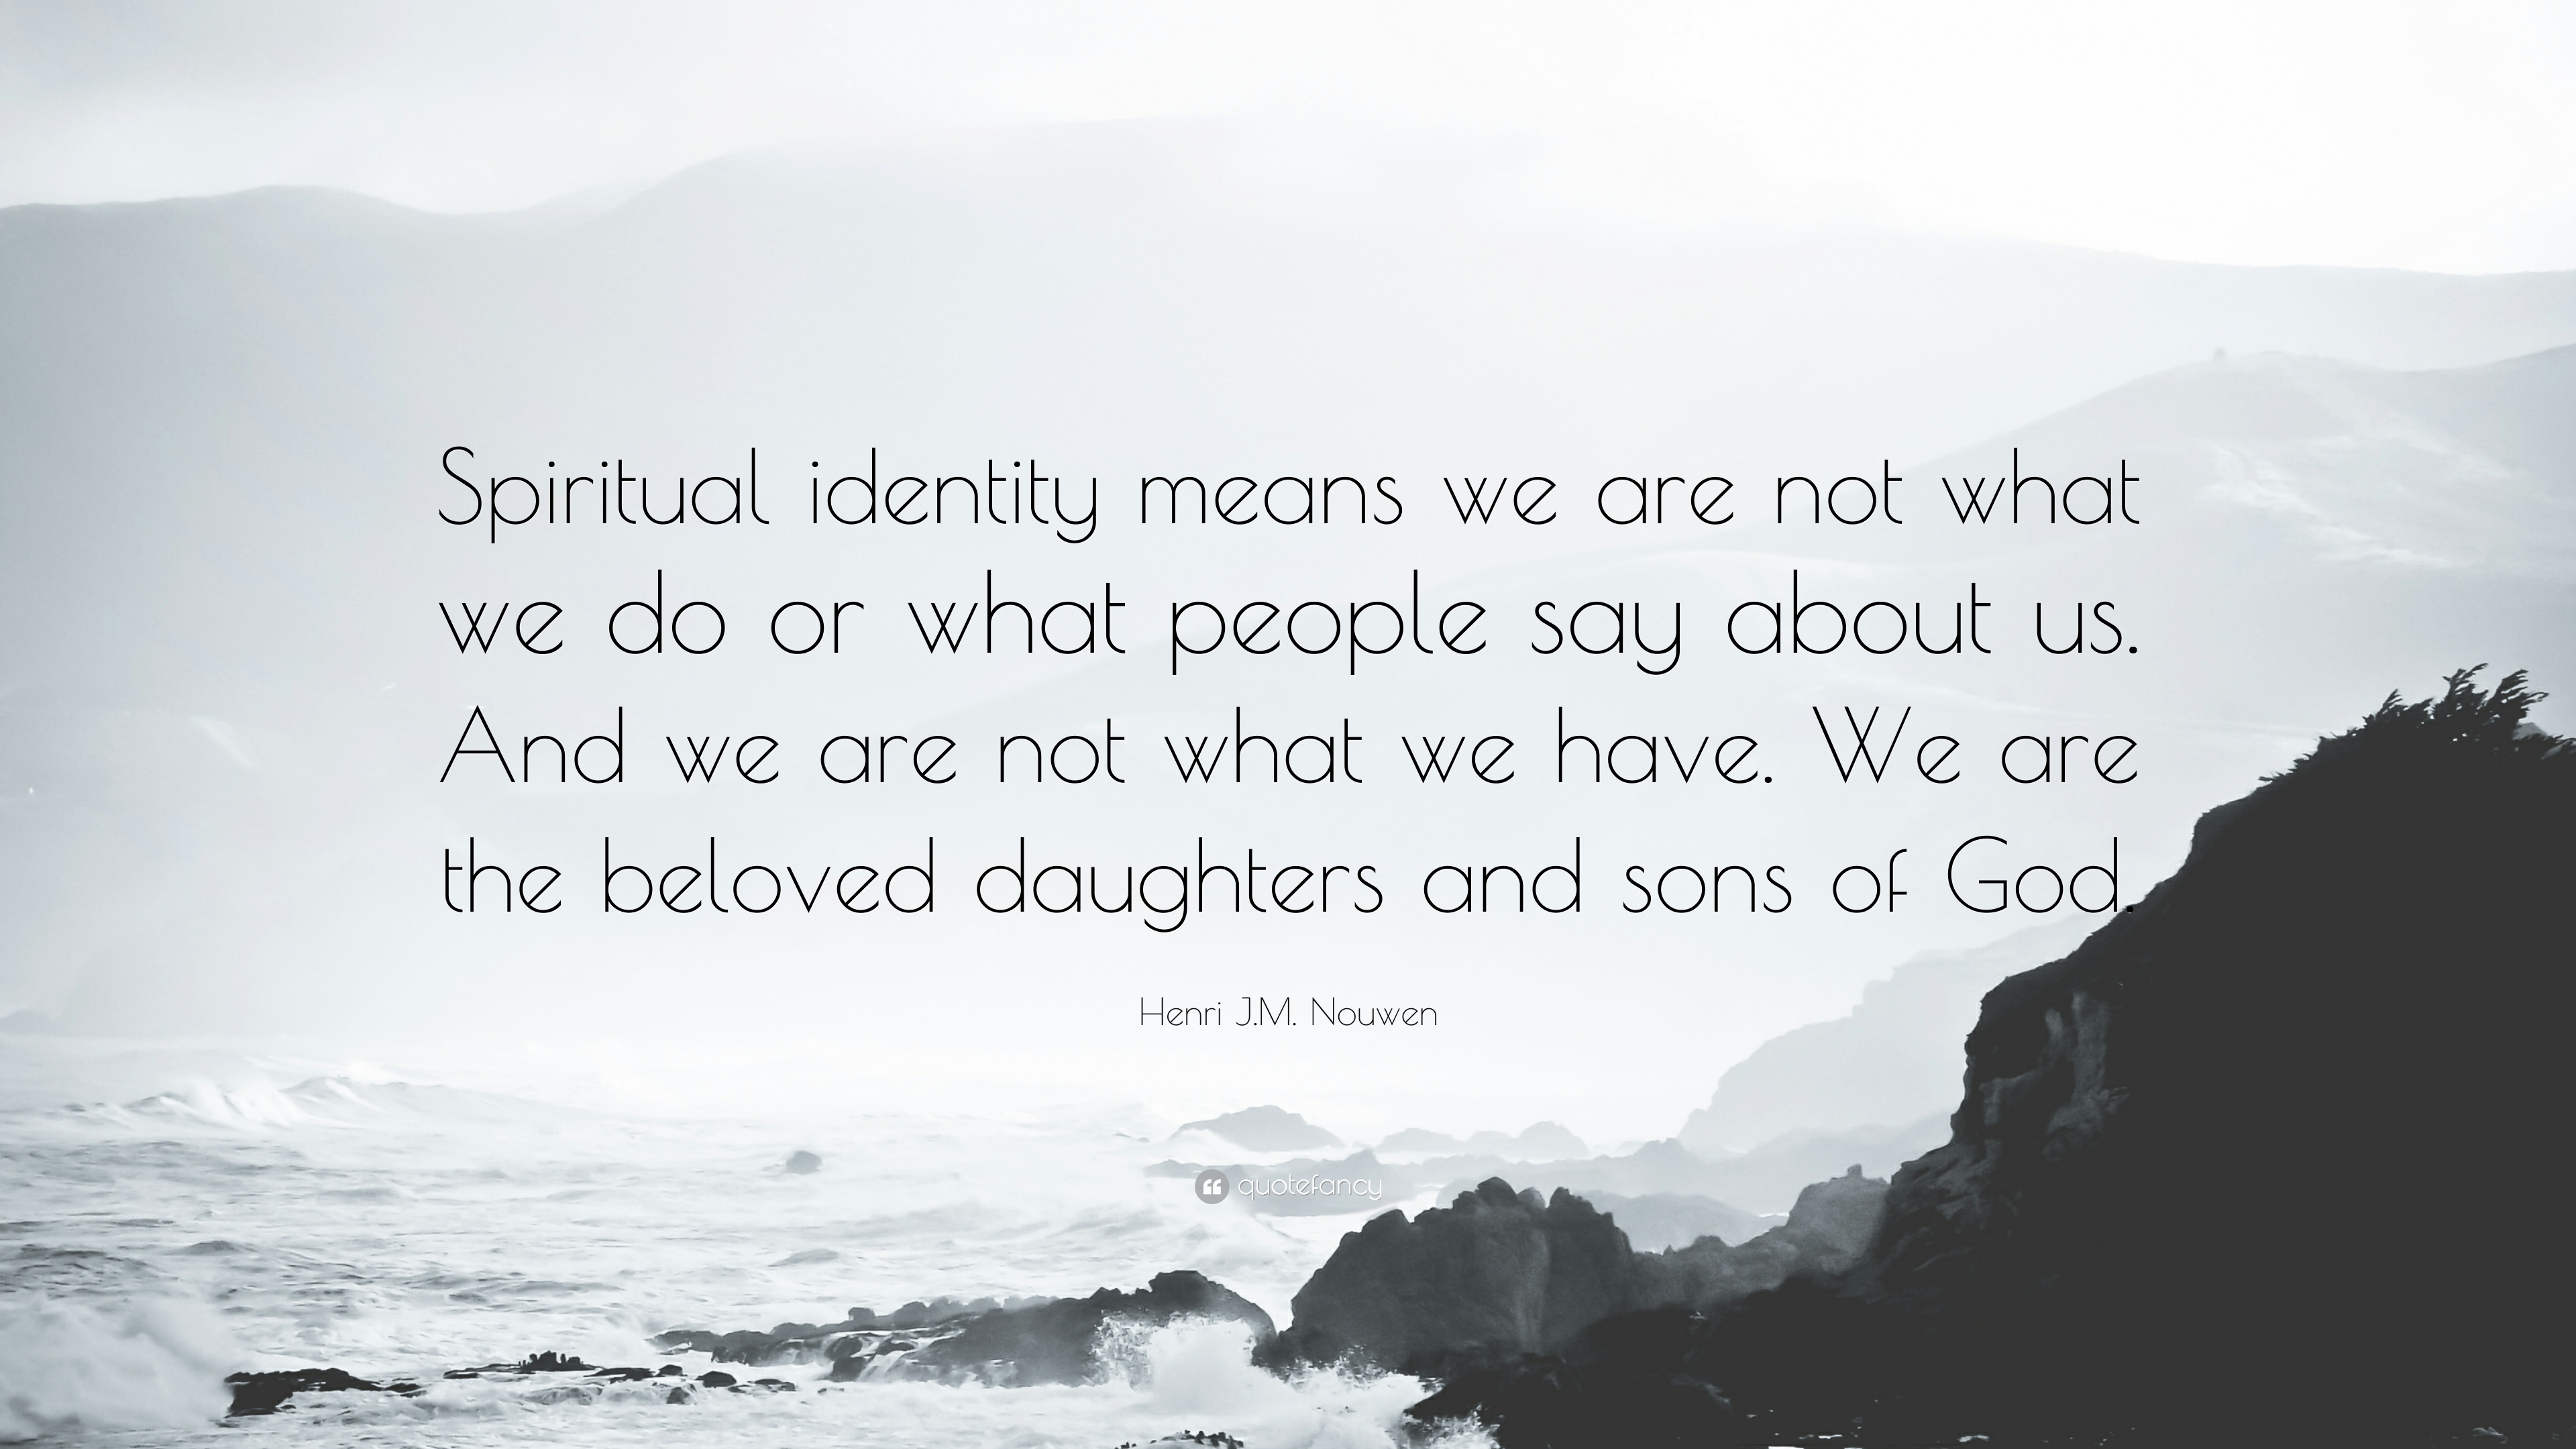 221843-Henri-J-M-Nouwen-Quote-Spiritual-identity-means-we-are-not-what-we.jpg